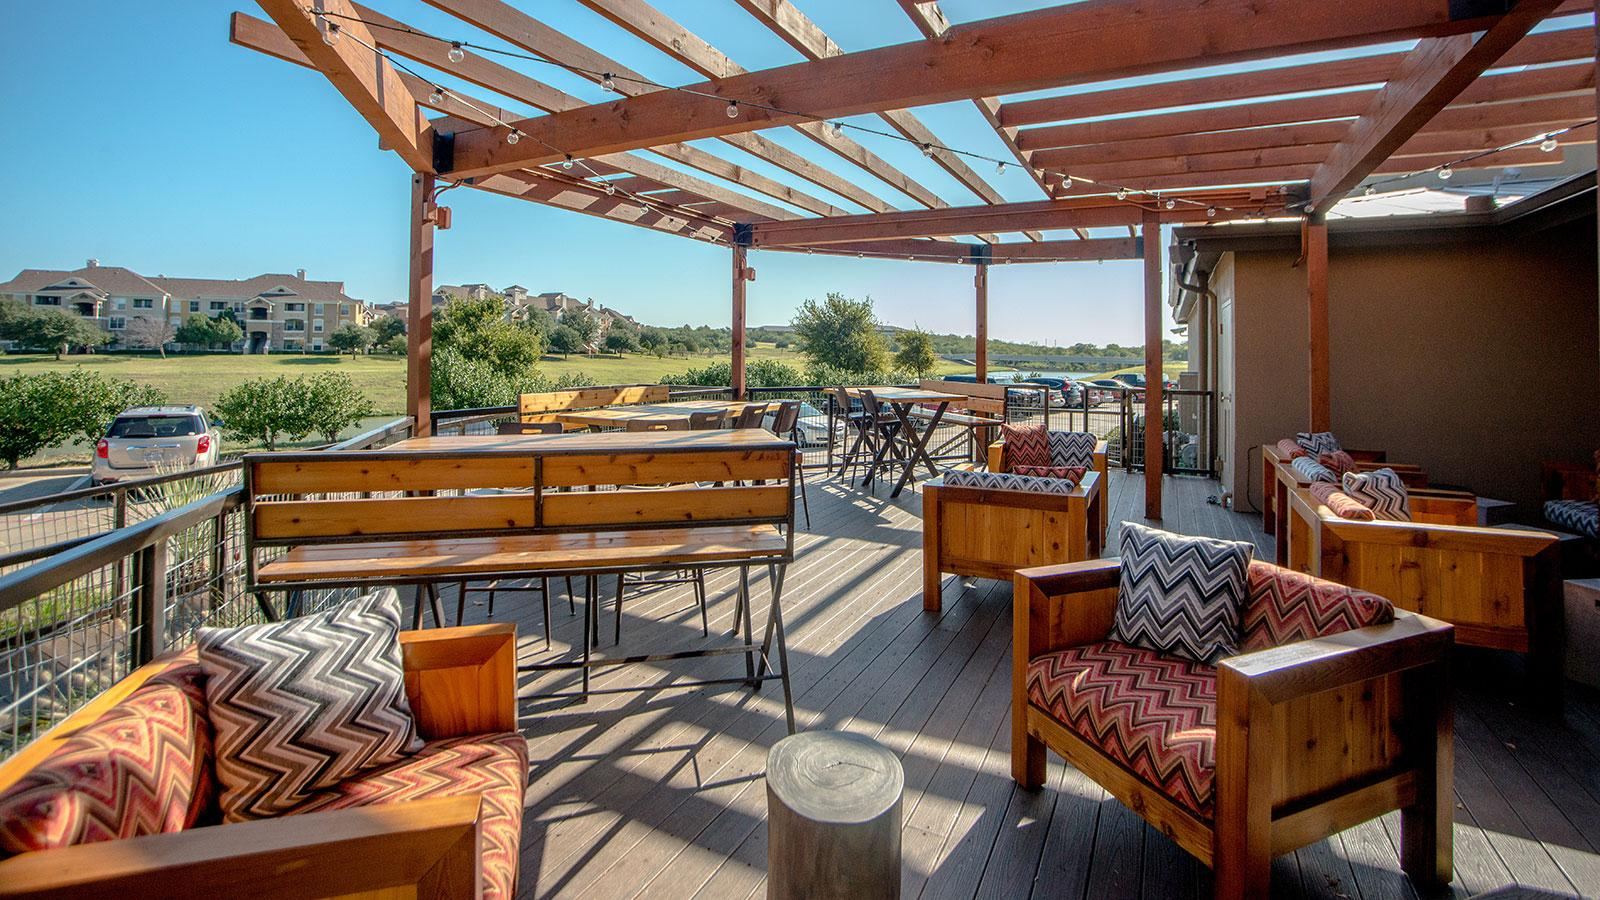 Review: The Ranch at Las Colinas, Irving, Texas